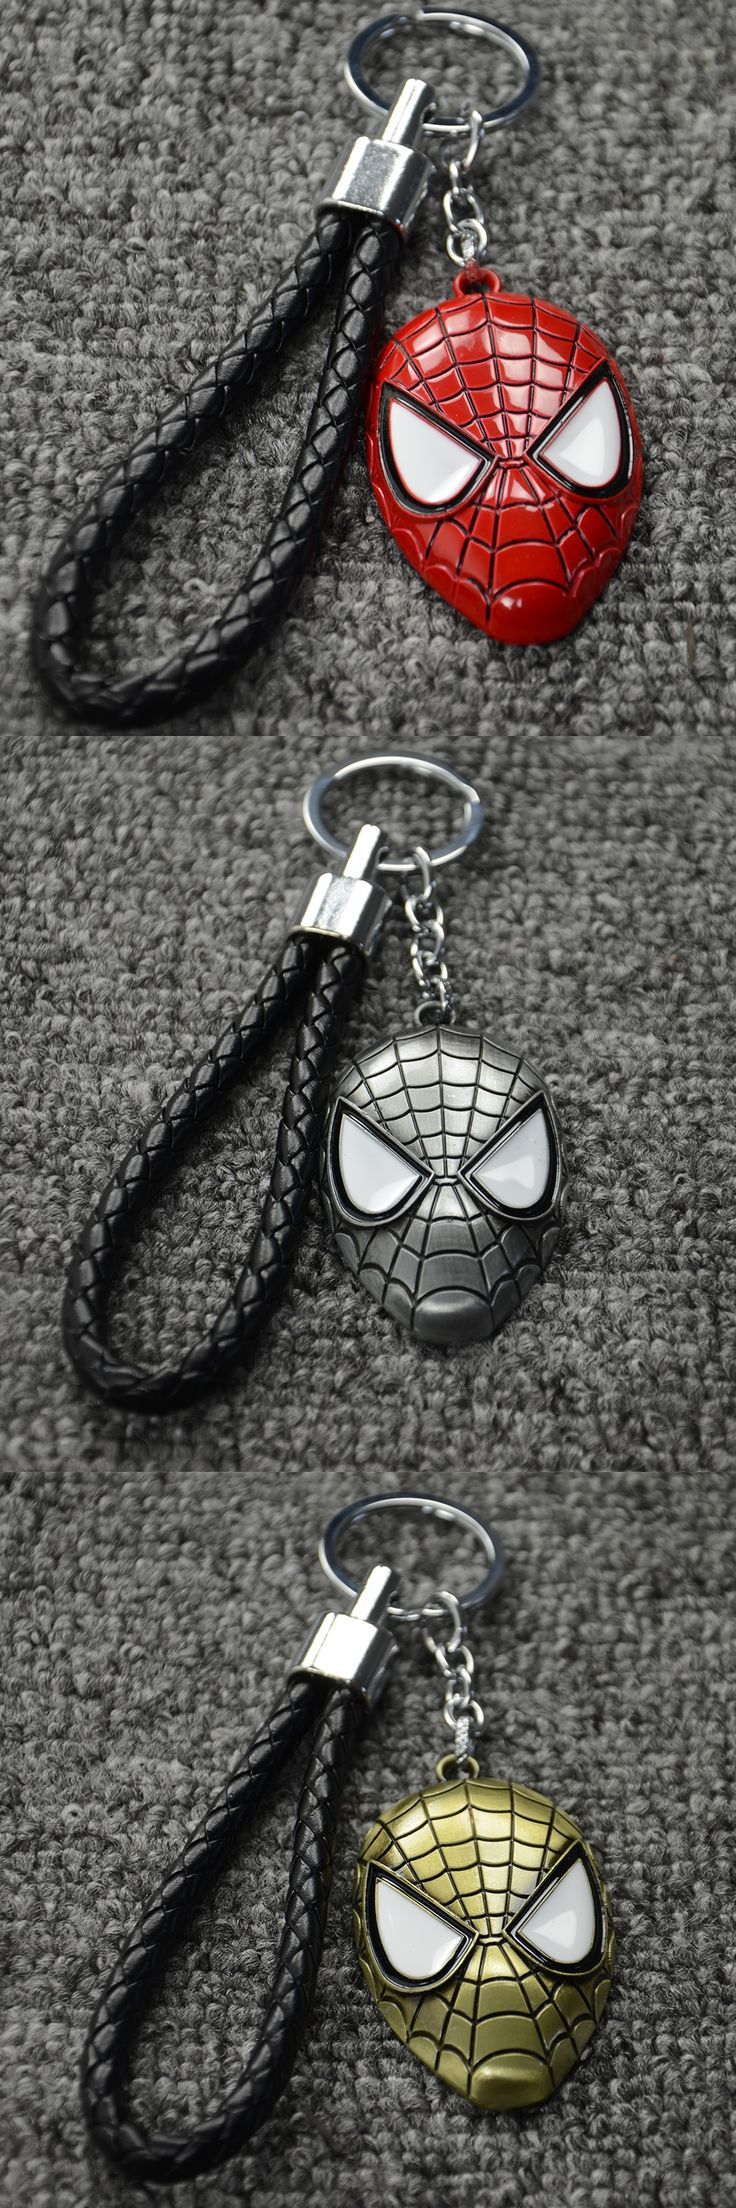 Hot Sales Key Chain Ring Pendant Creative Car Styling Purse Bag Backpack Spiderman Car & Motorcycle Keychain Car Accessories